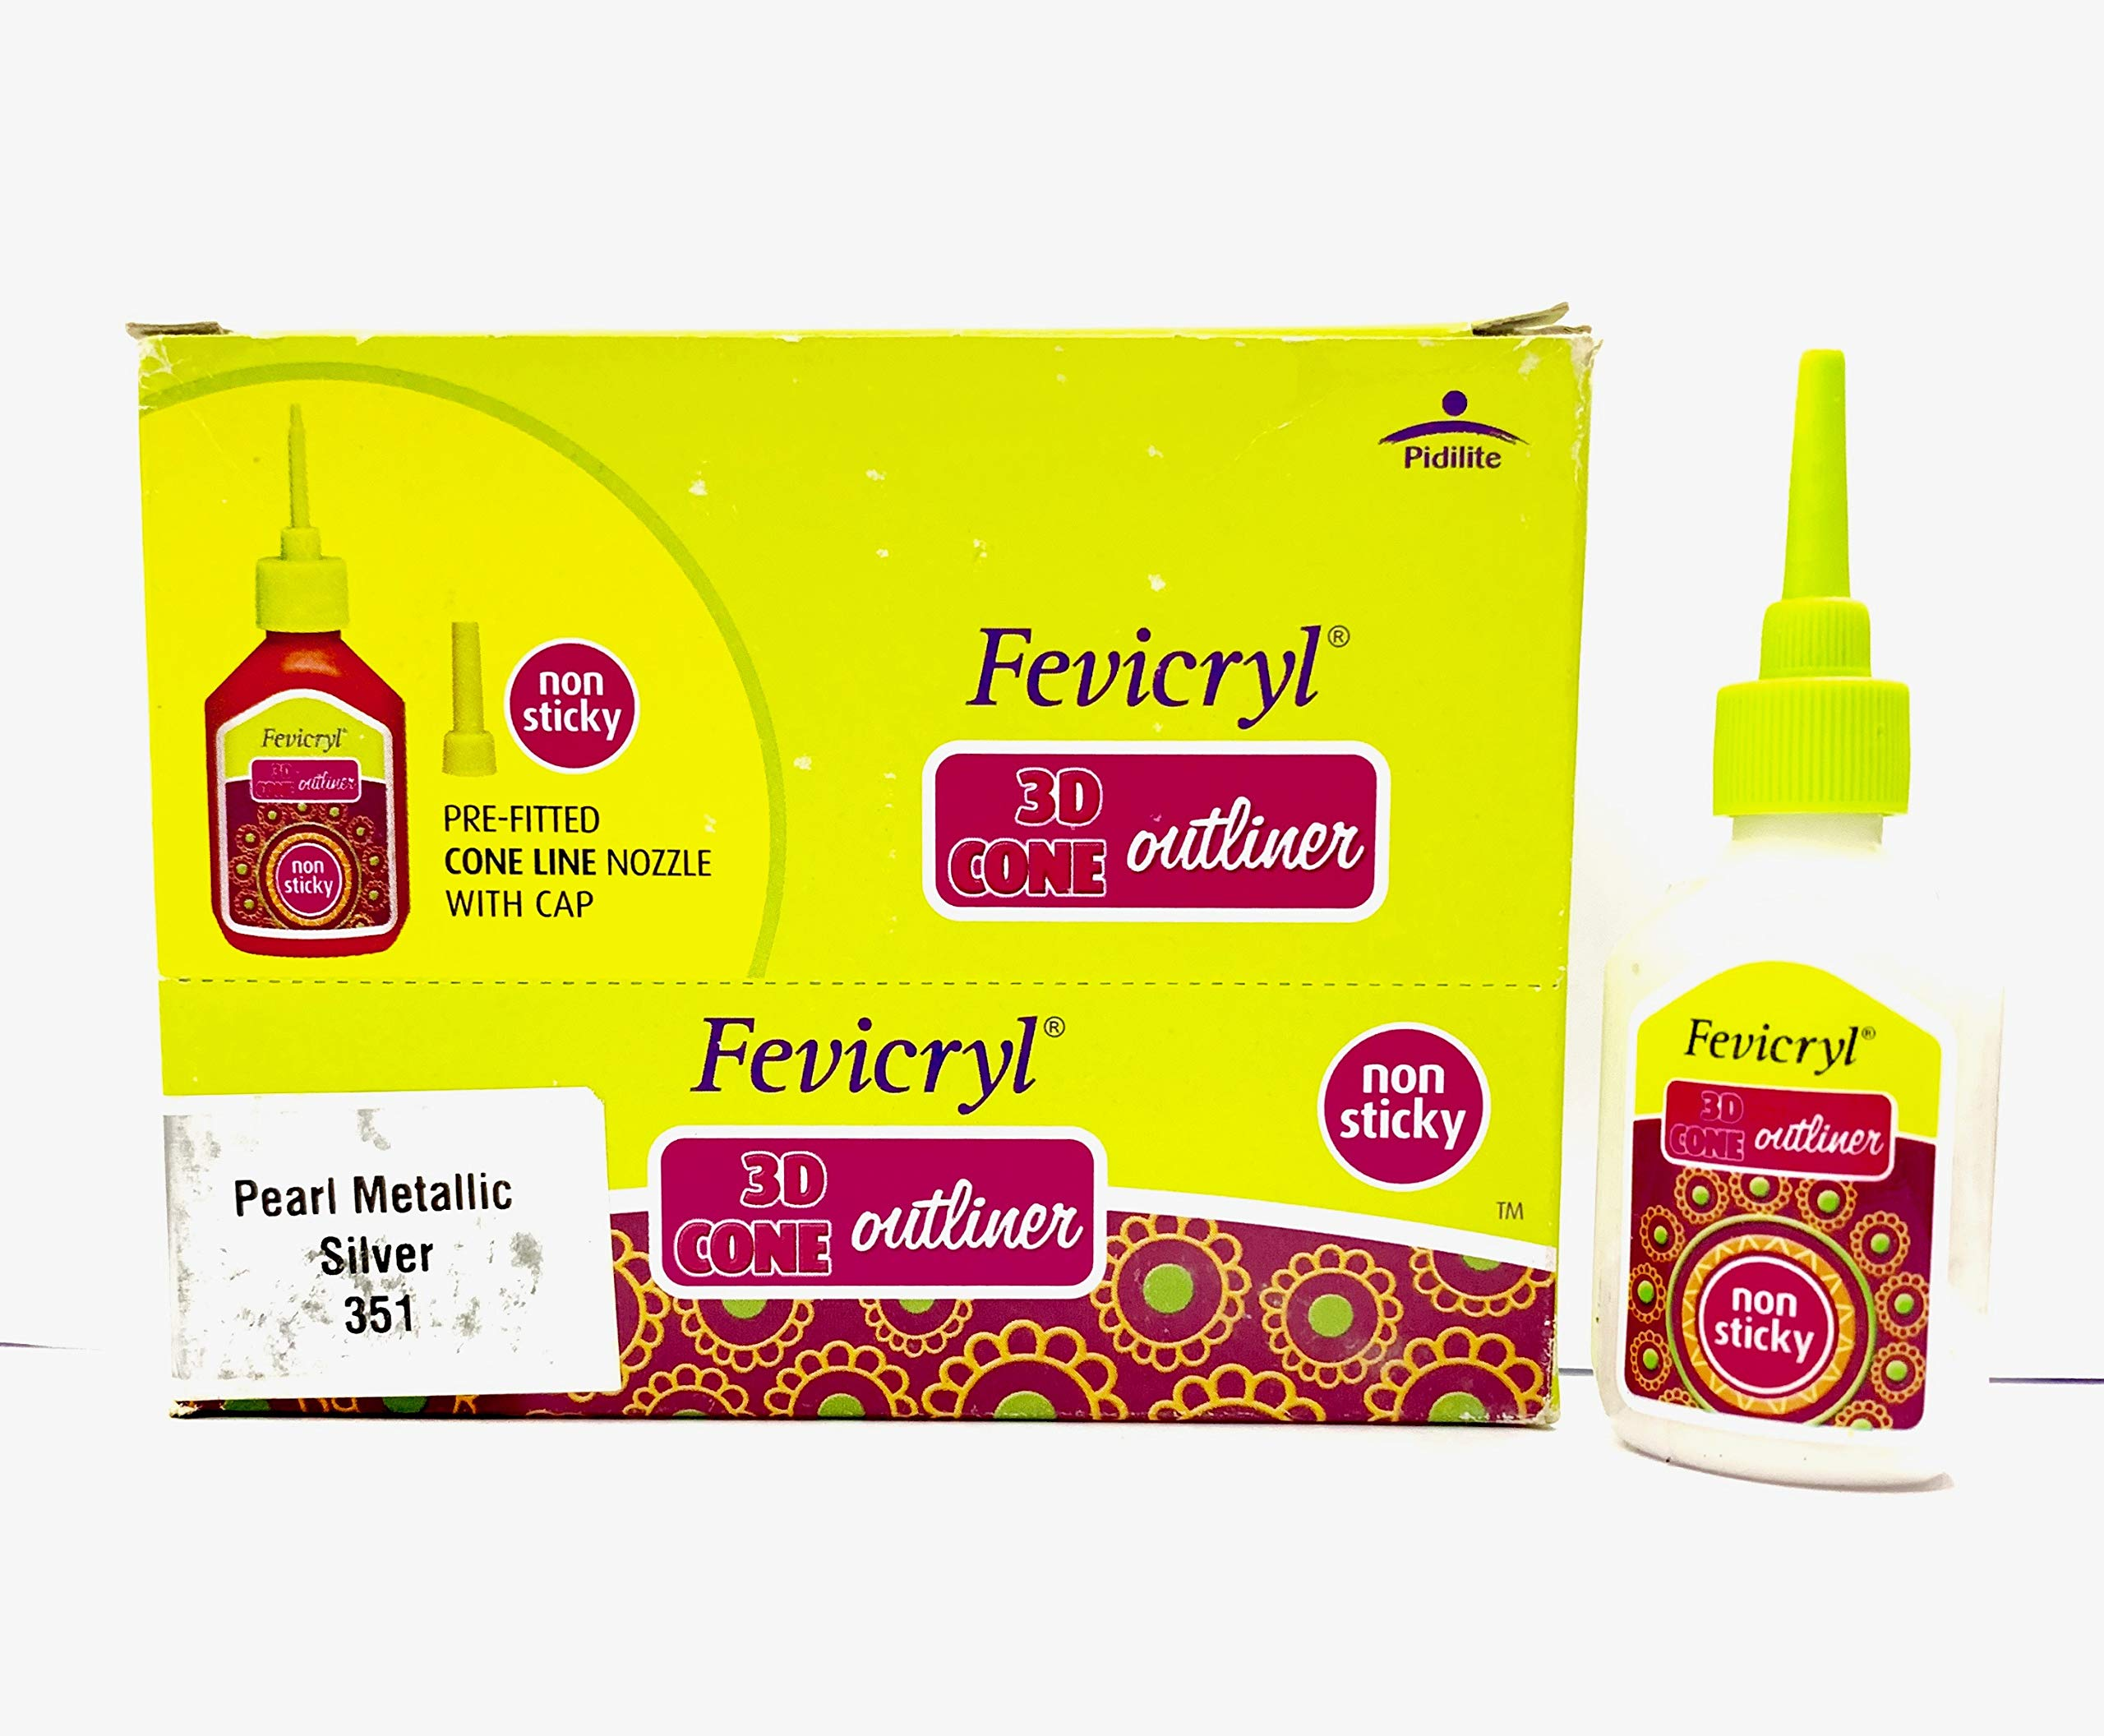 New Fevicryl Non Sticky 3D Cone Outliner Non-Toxic with Pre-Fitted Cone Line Nozzle with Cap (351) - 20ml Bottle -10 Bottle Pack - Colour - Pearl Metallic Silver- with Free 3D Keyring by Fevicryl